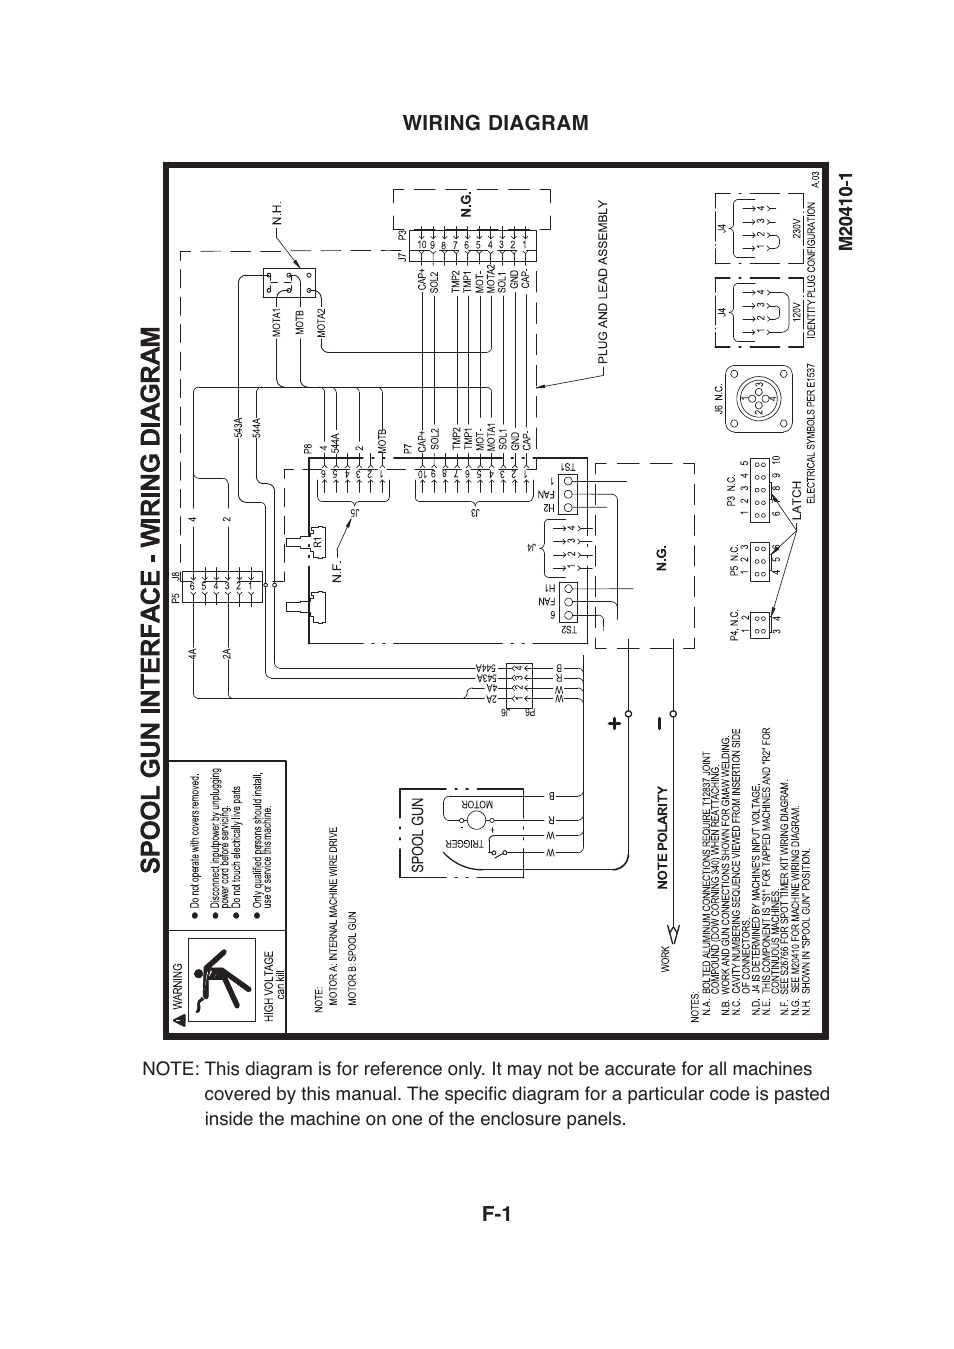 wiring diagram f 1 lincoln electric imt913 magnum 100sg spool gun 1966 Lincoln Wiring-Diagram wiring diagram f 1 lincoln electric imt913 magnum 100sg spool gun user manual page 35 118